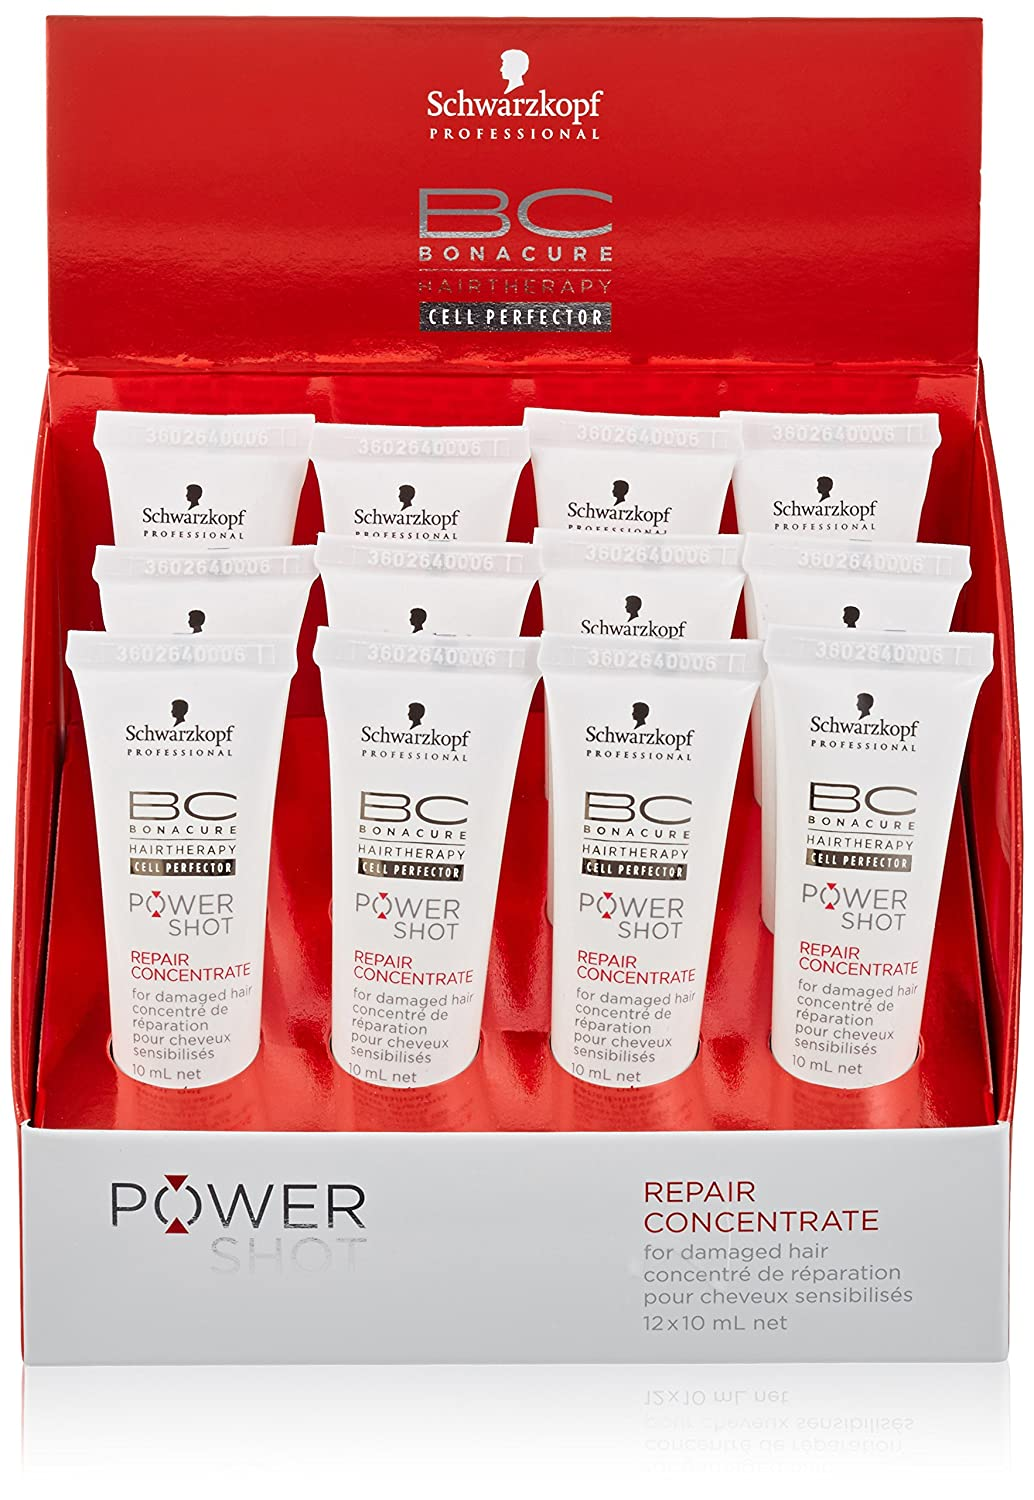 Schwarzkopf Bonacure Power Shot Repair Concentrate 12x 10 ml, 1er Pack, (1x 0,12 L) Schwarzkopf Professional 10369